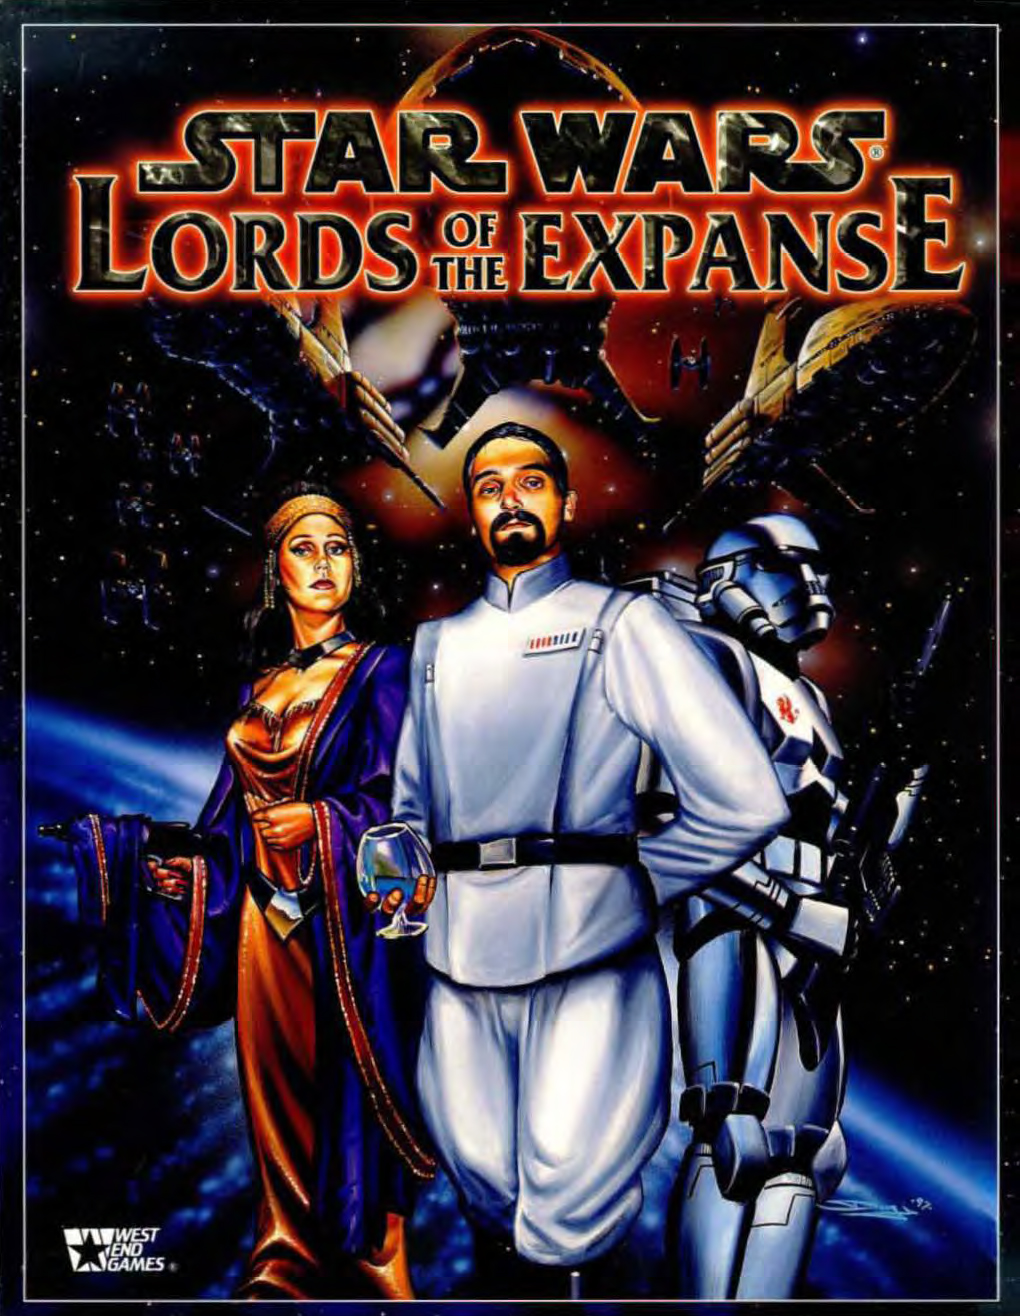 Star Wars: Lords of the Expanse